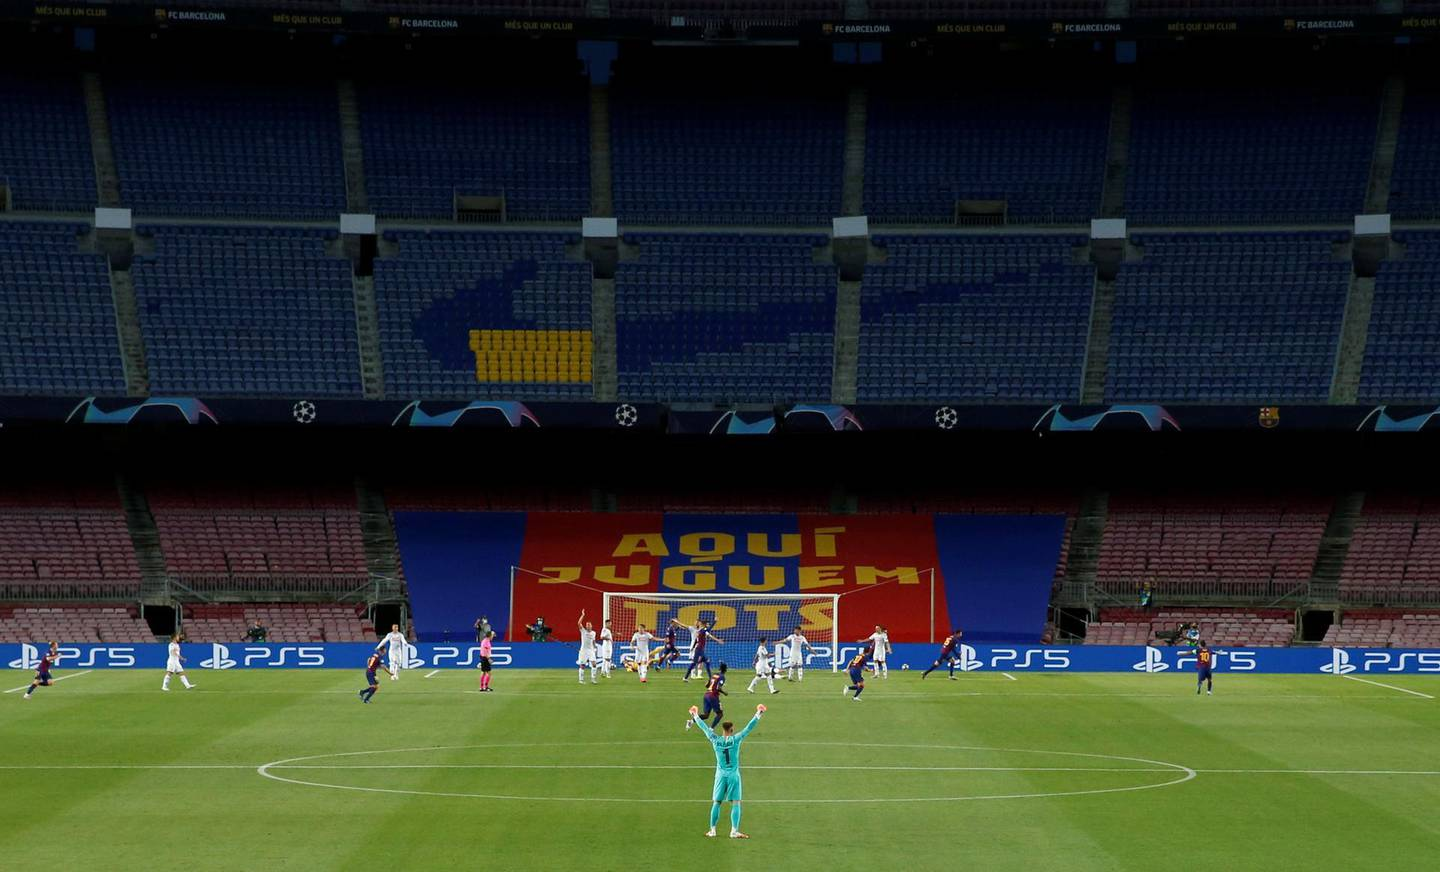 Soccer Football - Champions League - Round of 16 Second Leg - FC Barcelona v Napoli - Camp Nou, Barcelona, Spain - August 8, 2020  General view inside the stadium during the match, as play resumes behind closed doors following the outbreak of the coronavirus disease (COVID-19)  REUTERS/Albert Gea